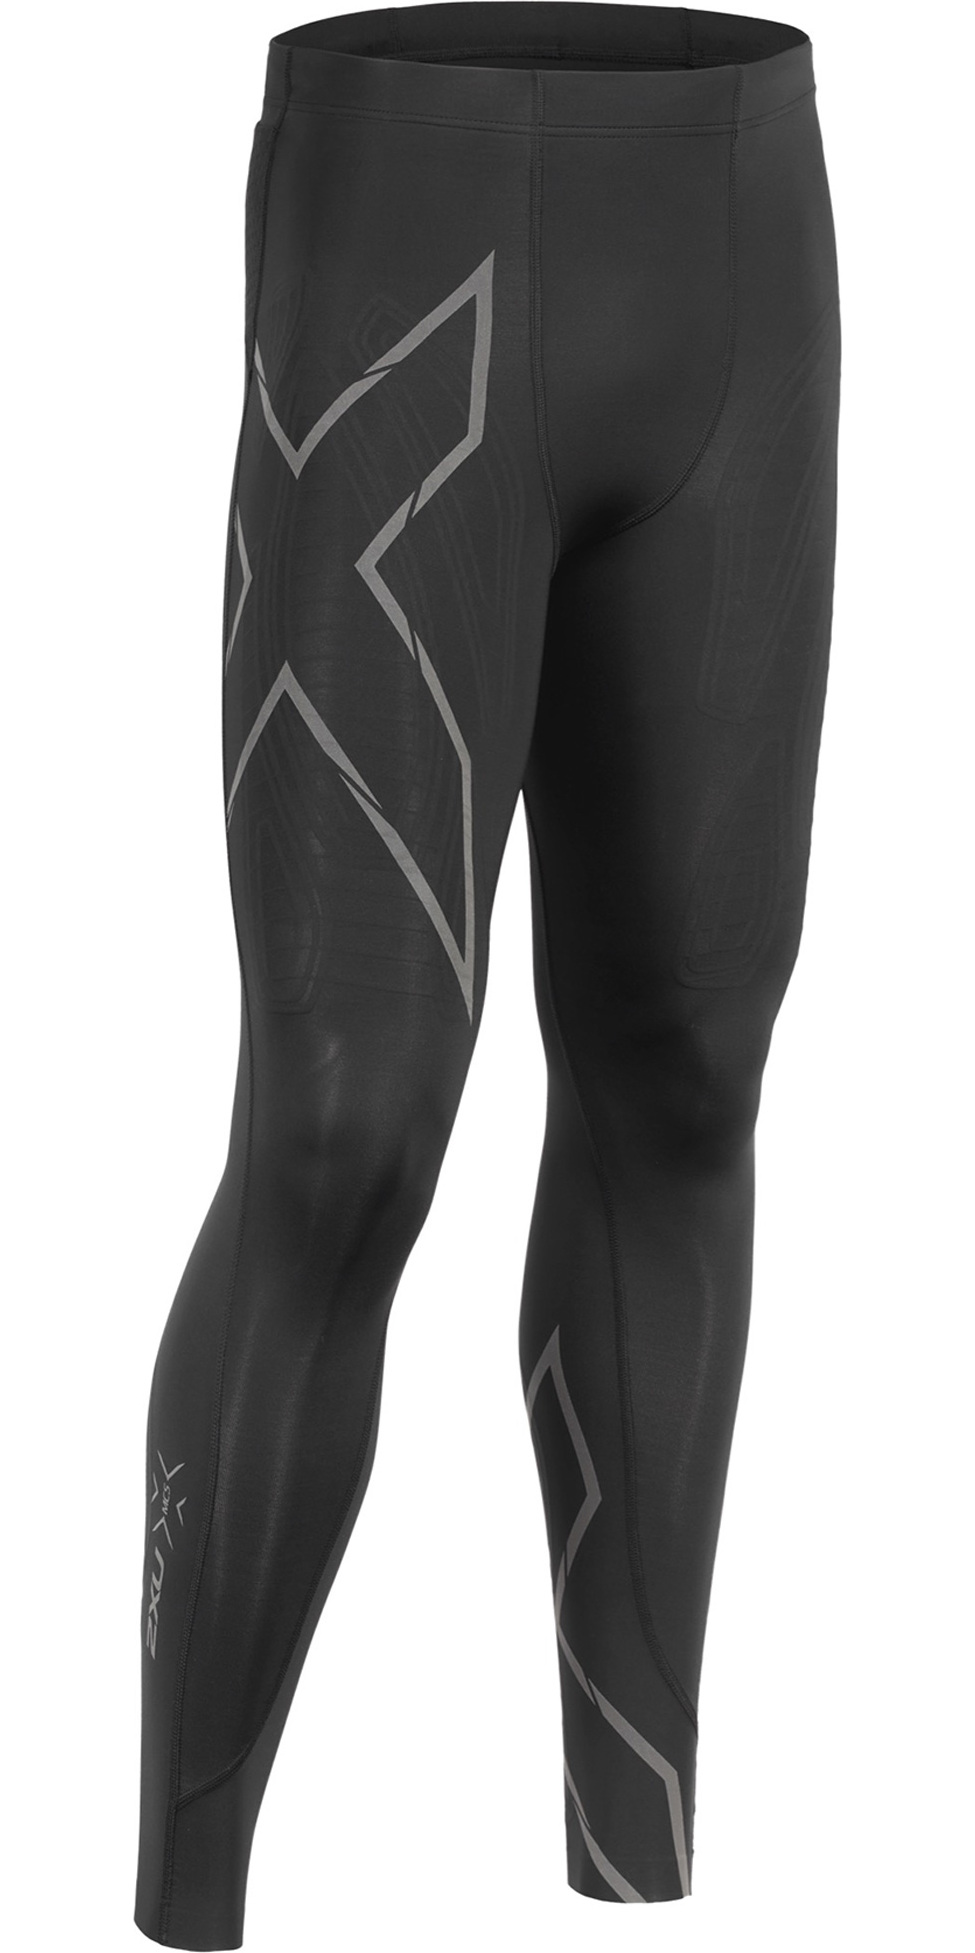 56d780ca 2019 2XU Mens Mcs Run Compression Tights Black Reflective Ma5305b -  Triathlon Clothing | Wetsuit Outlet